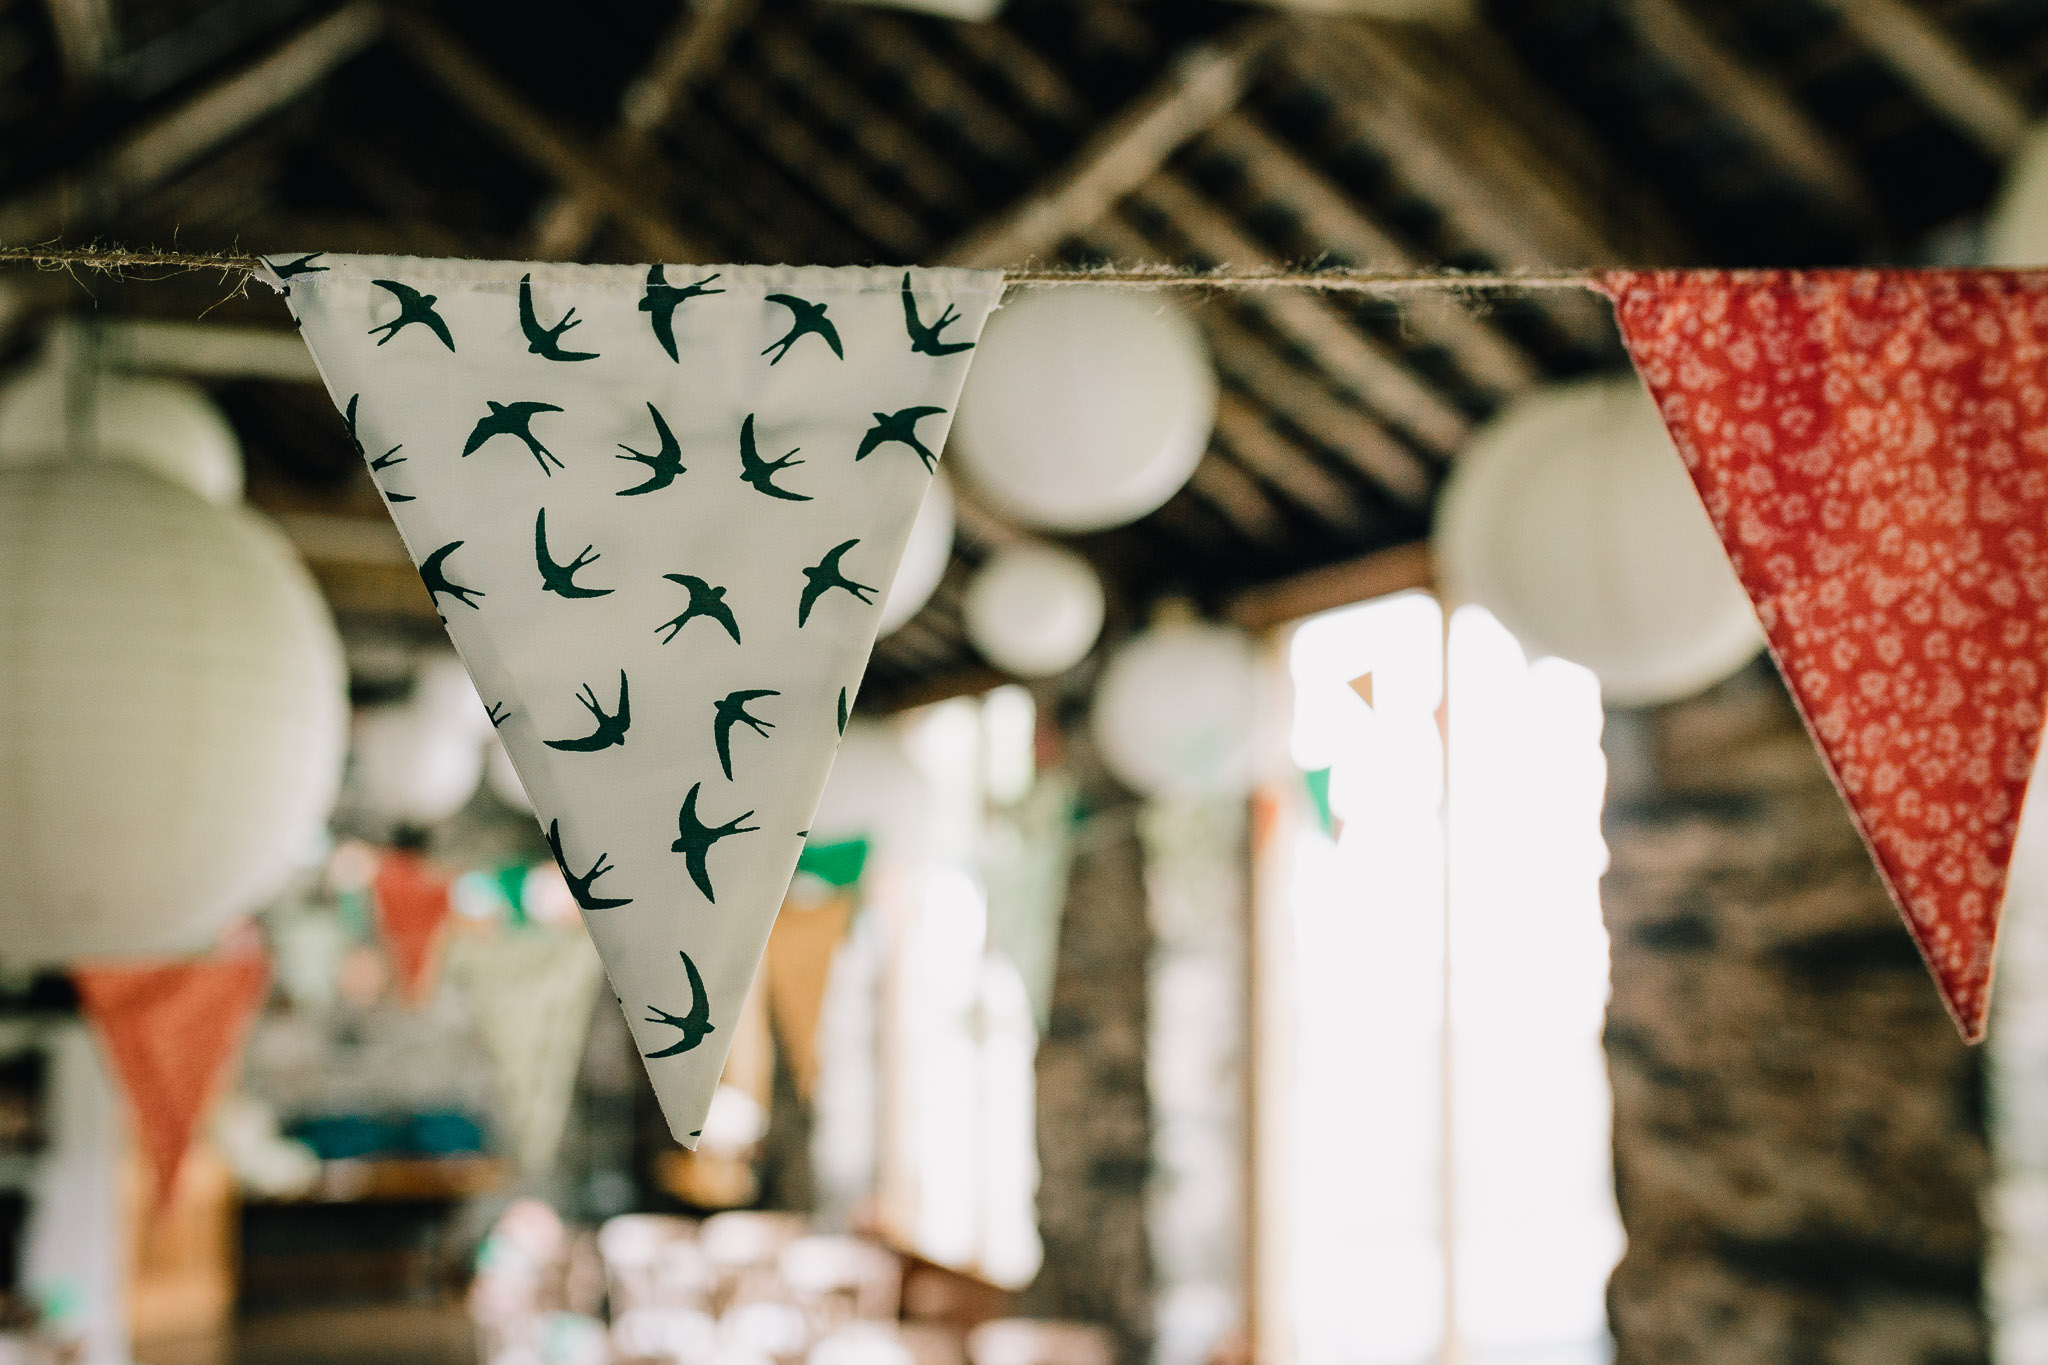 DIY WEDDING BUNTING WITH WILDLIFE AND ANIMAL THEME